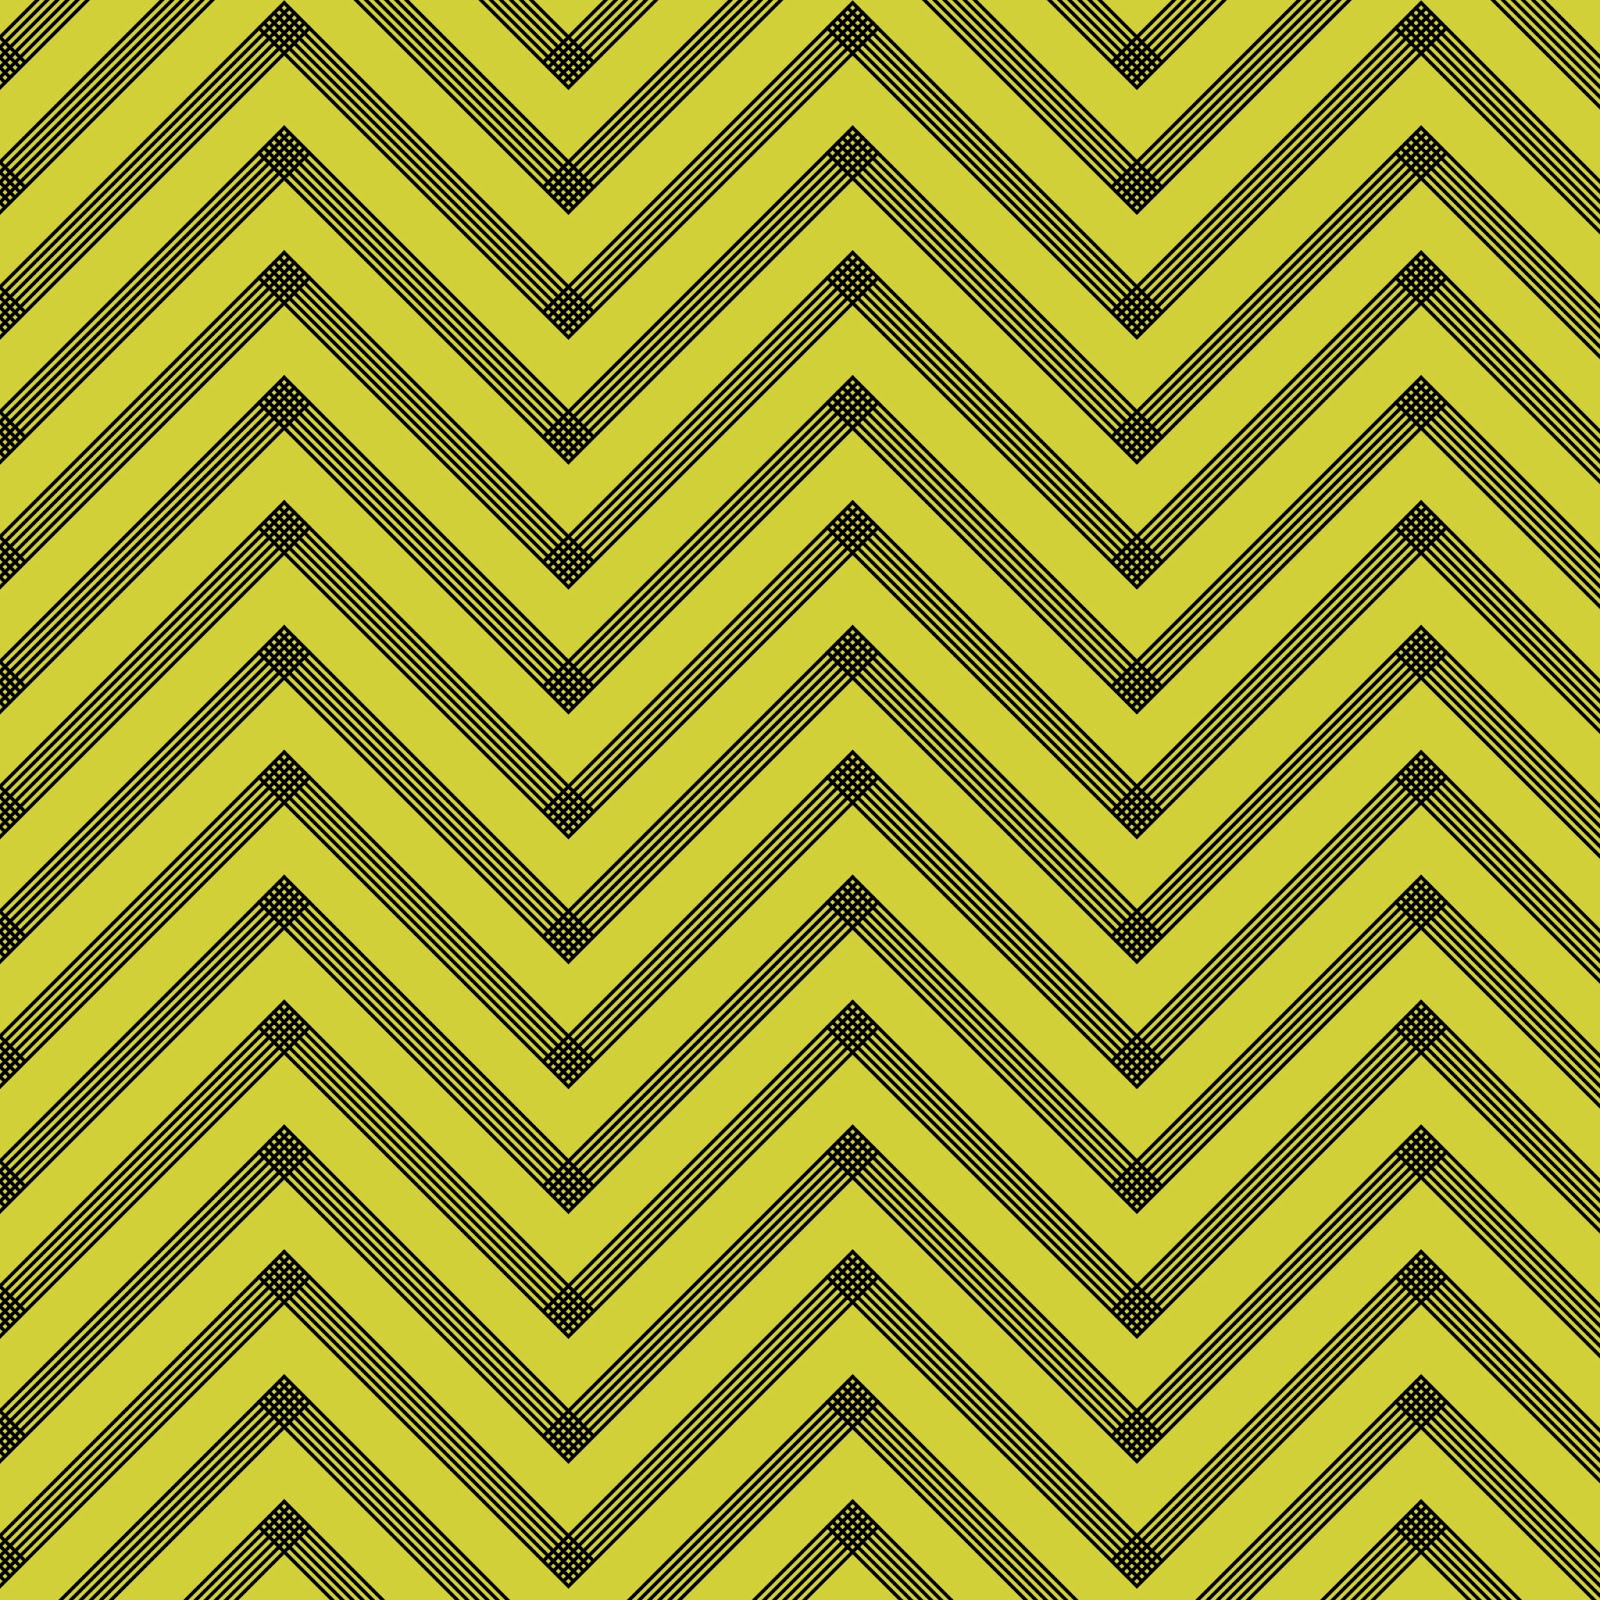 Free Sketchy Chevron Background FREEBIES!